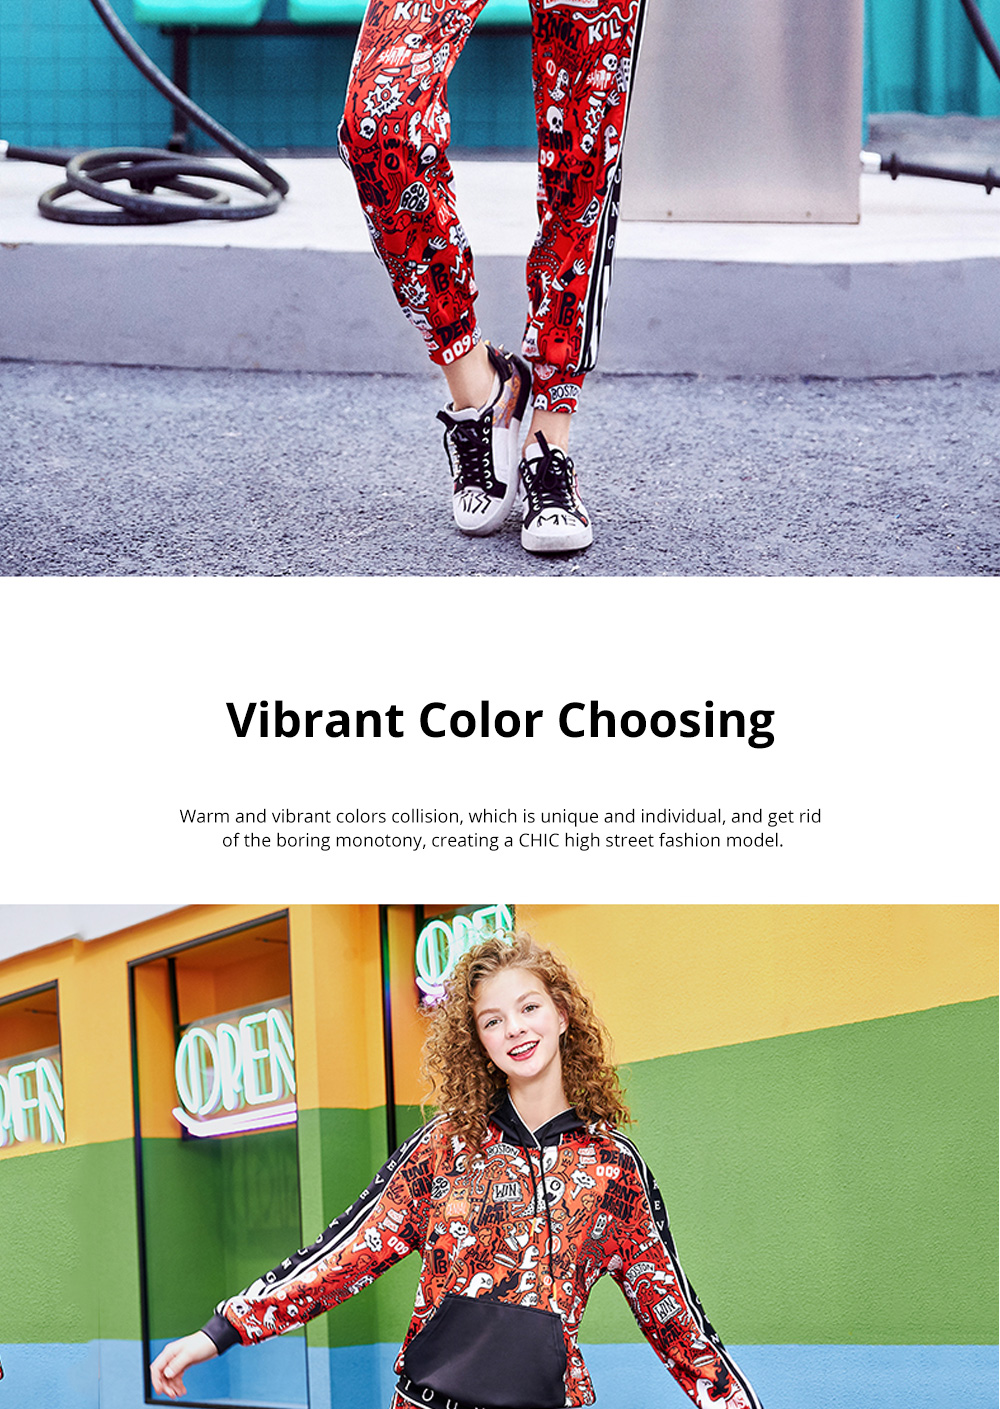 Women's Tracksuit with Vibrant Color 2 Piece Sets Casual Hoodie Suit with Close-Up Sleeve and Leg Openings 2